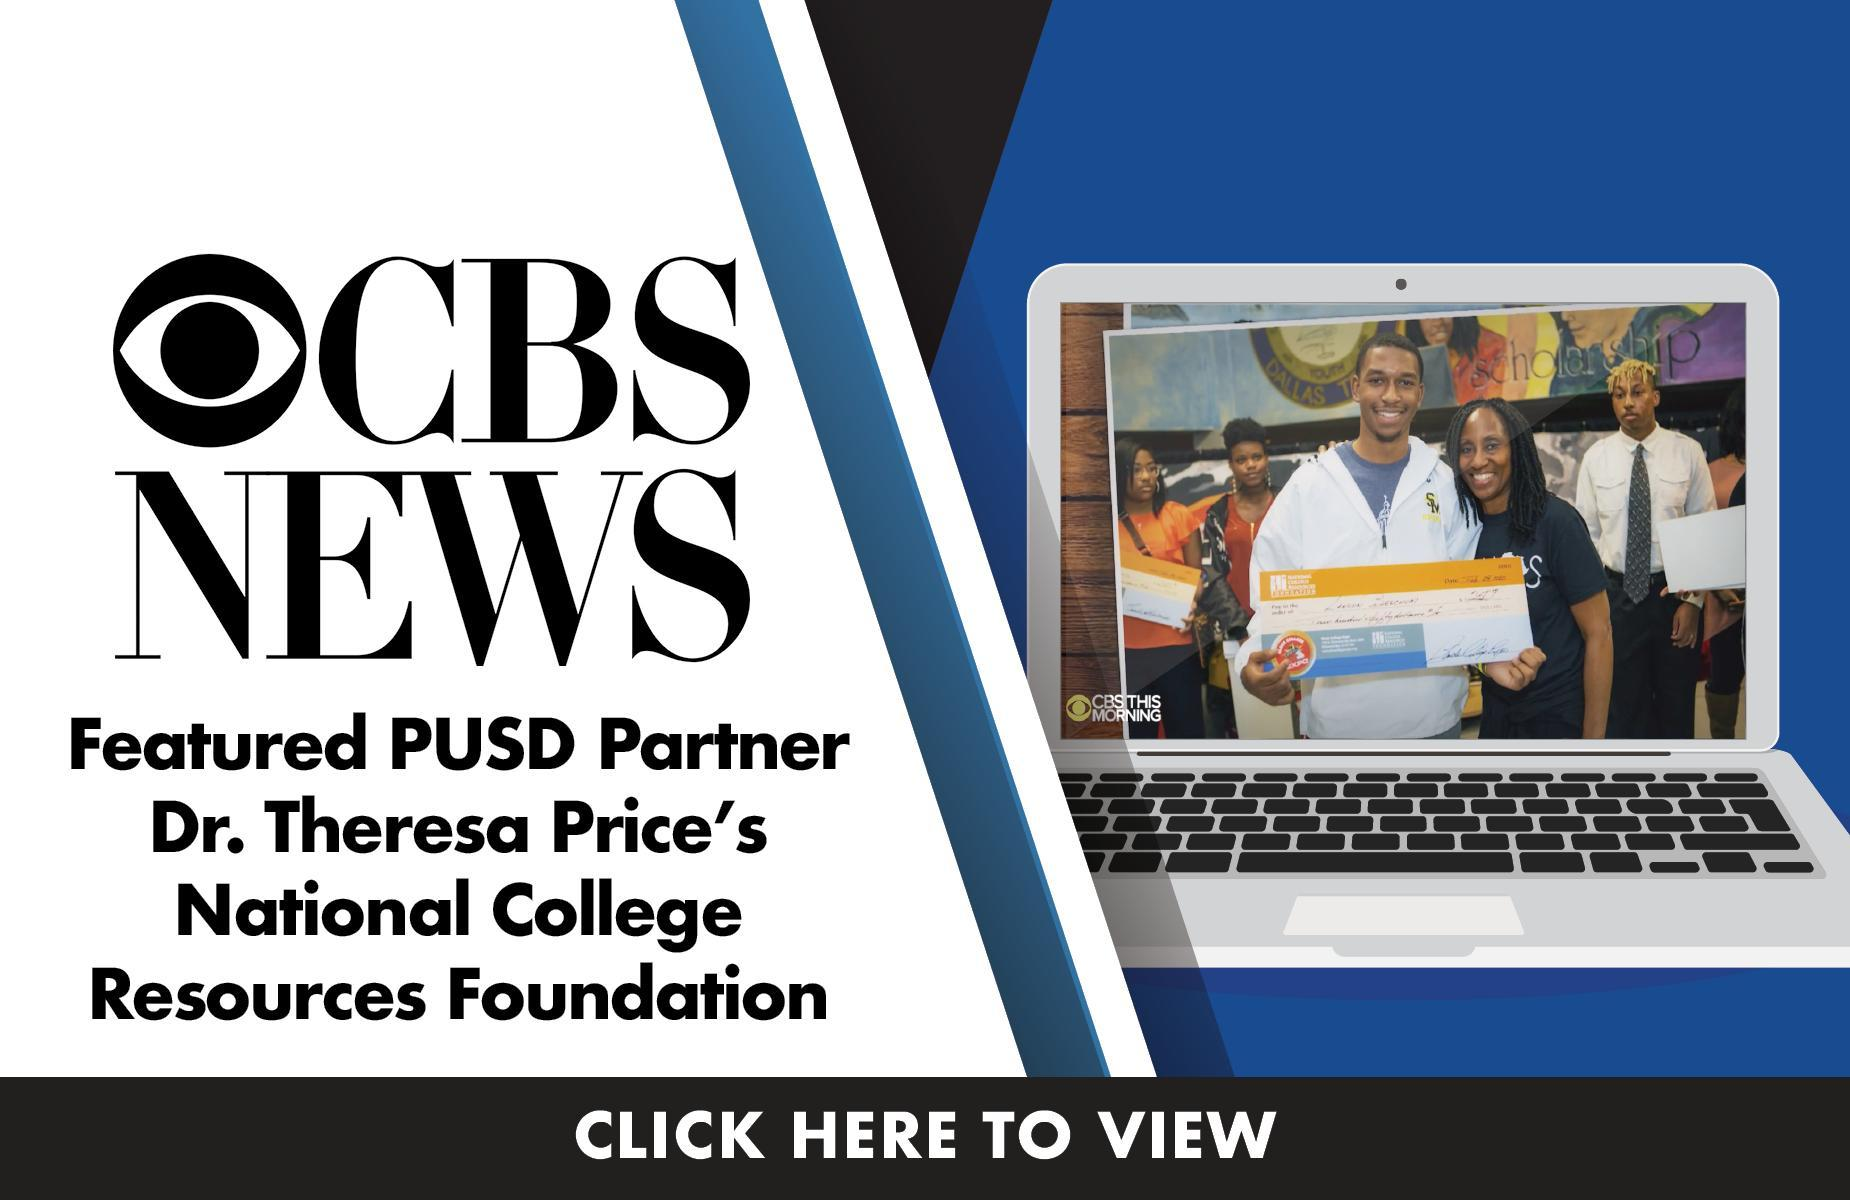 https://www.cbs.com/shows/cbs_this_morning/video/3TlB2aNdoOj8BcEf08ZYPn4tFVSiA9Ib/black-college-expo-helps-students-get-earn-scholarships-on-the-spot/